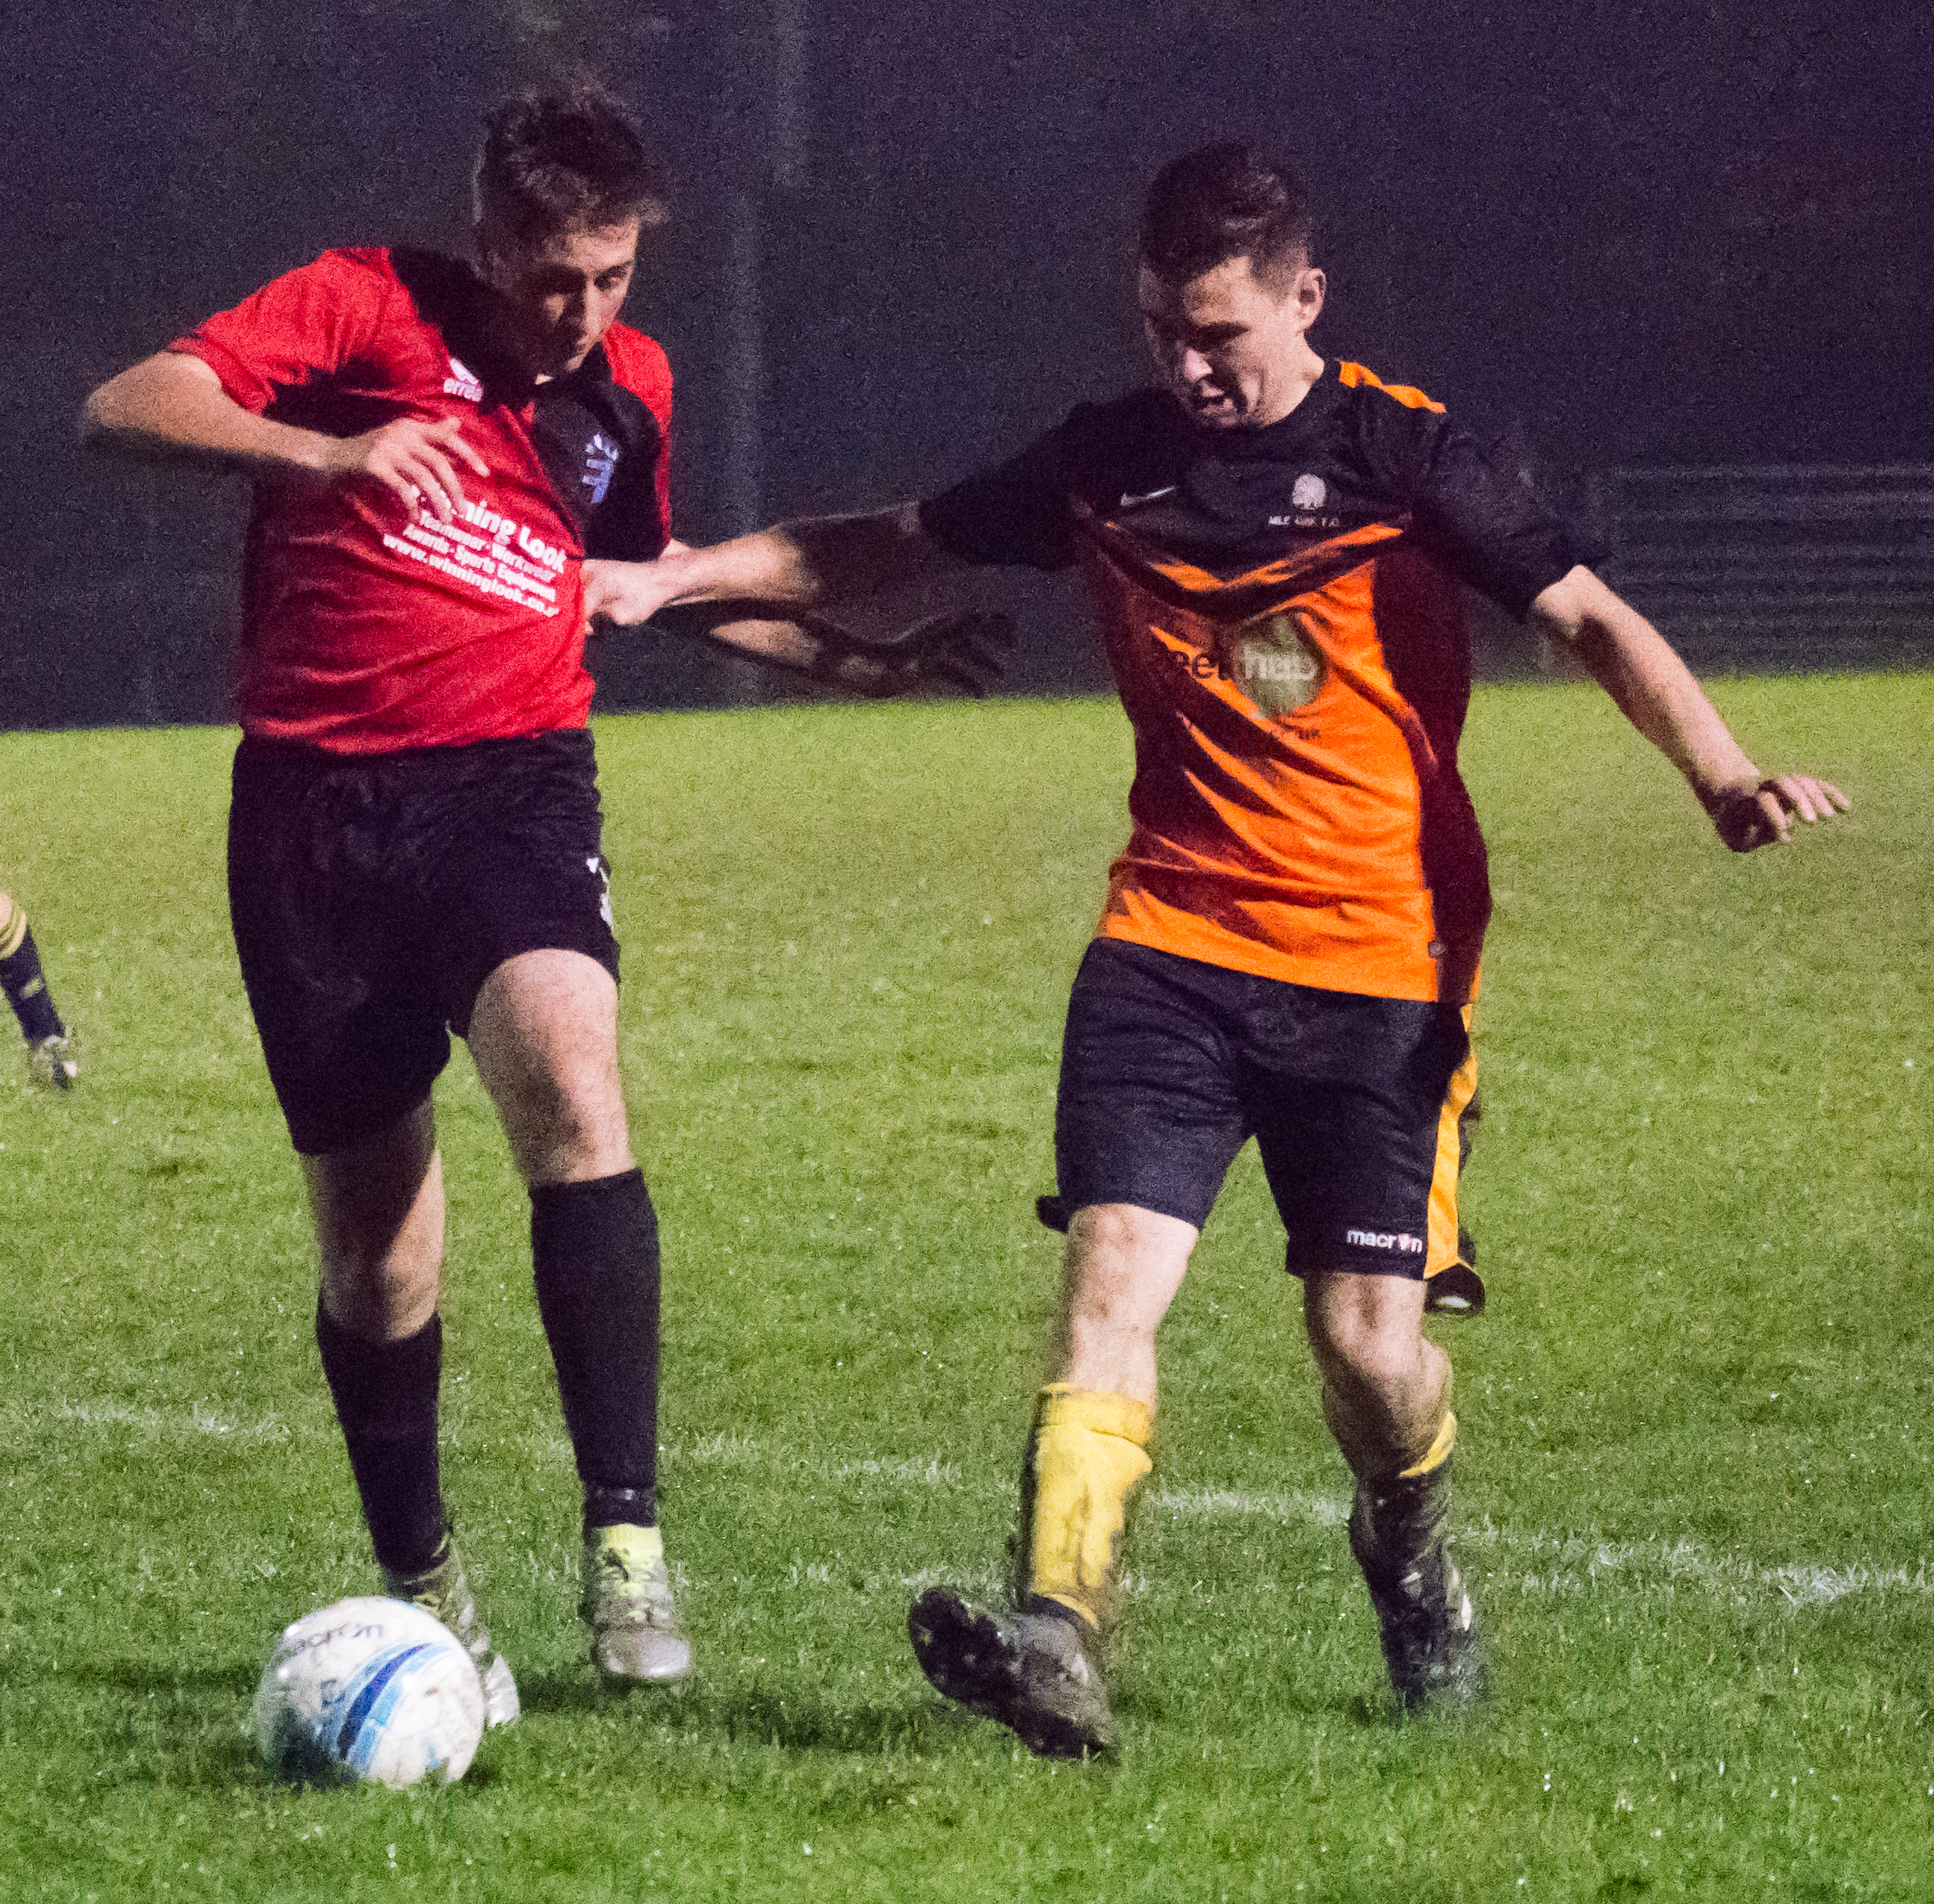 Mile Oak U21s vs Uckfield U21s 02.11.17 14